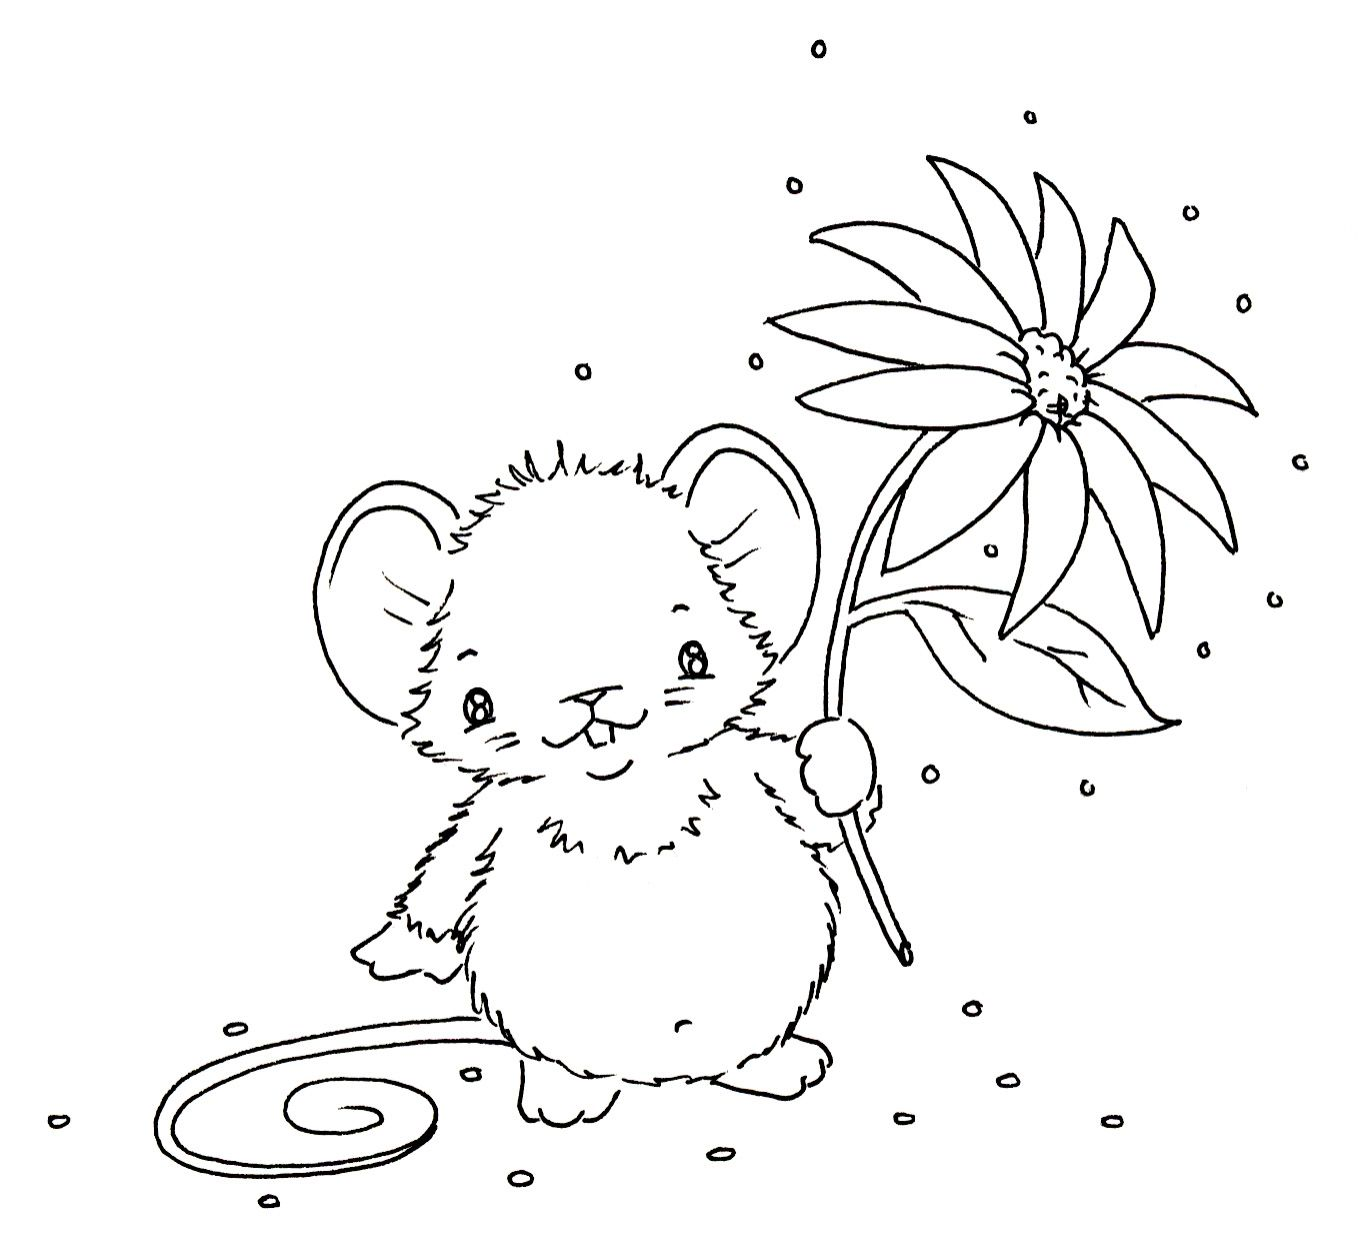 Cute little mouse for embroidery | Artsy Fartsy lets get creative ...